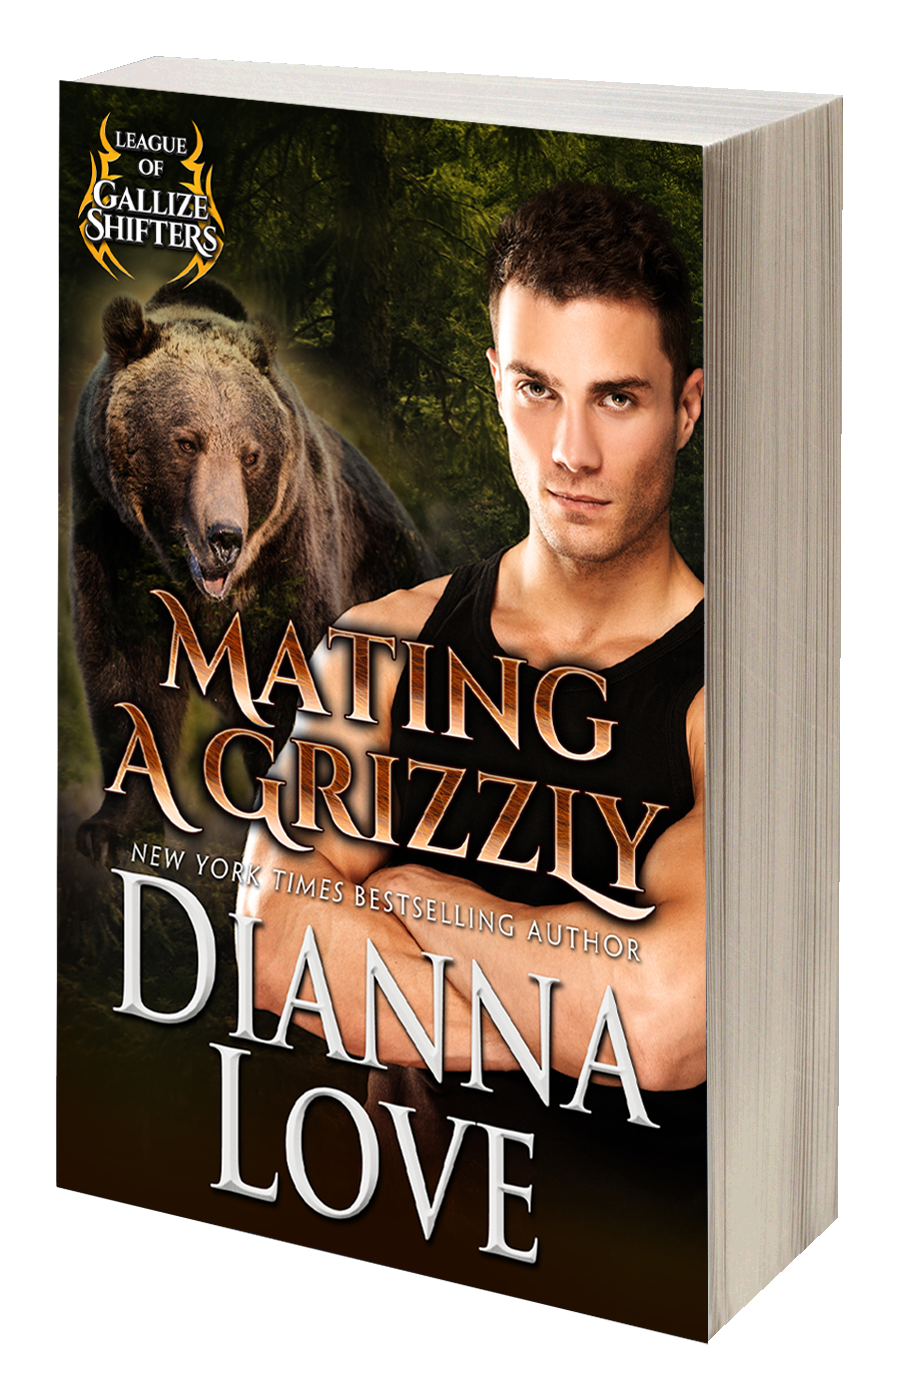 Mating A Grizzly: League Of Gallize Shifters book 2